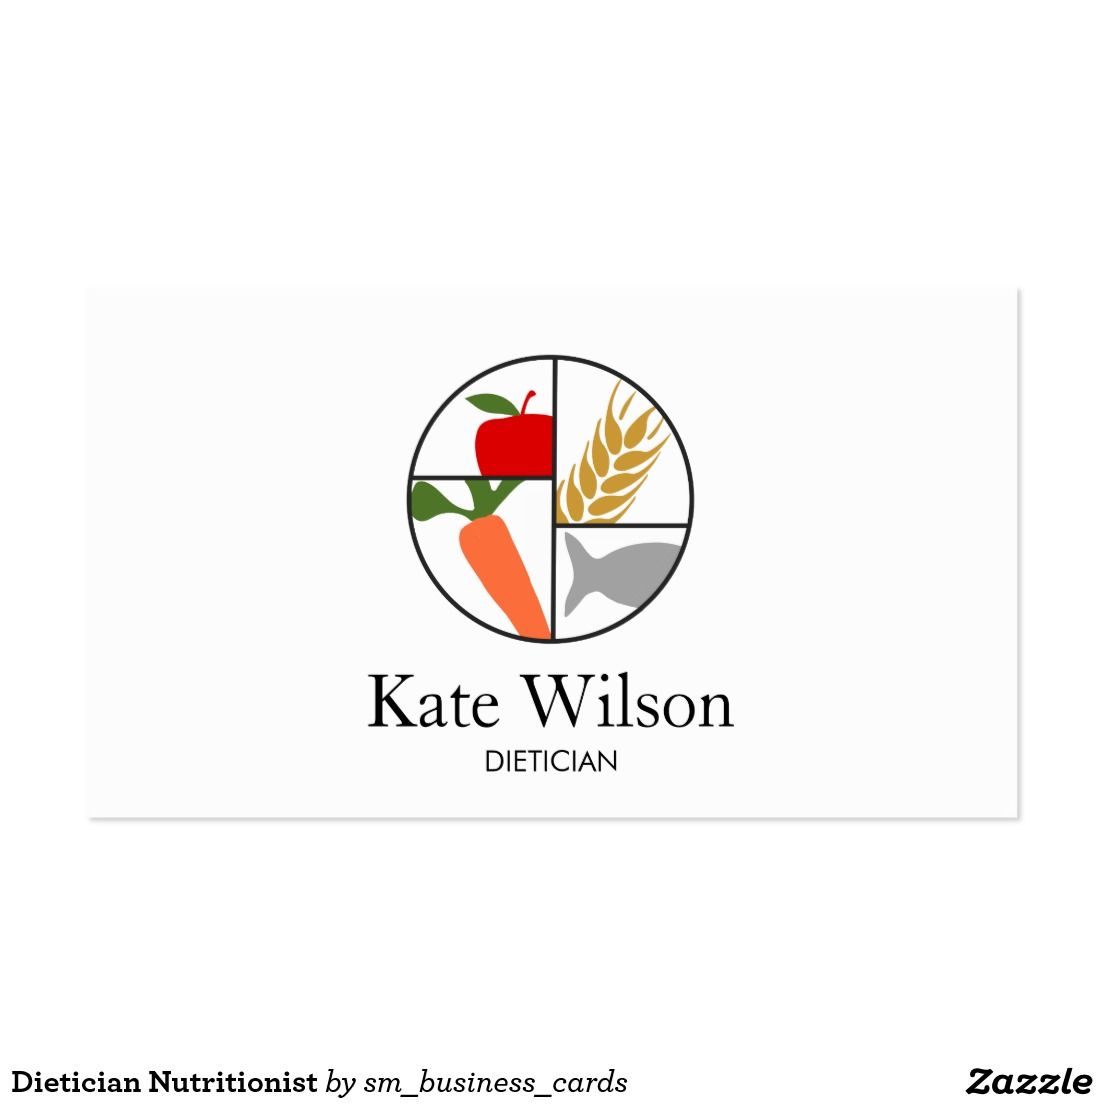 Dietician nutritionist business card business cards business and dietician nutritionist business card reheart Image collections